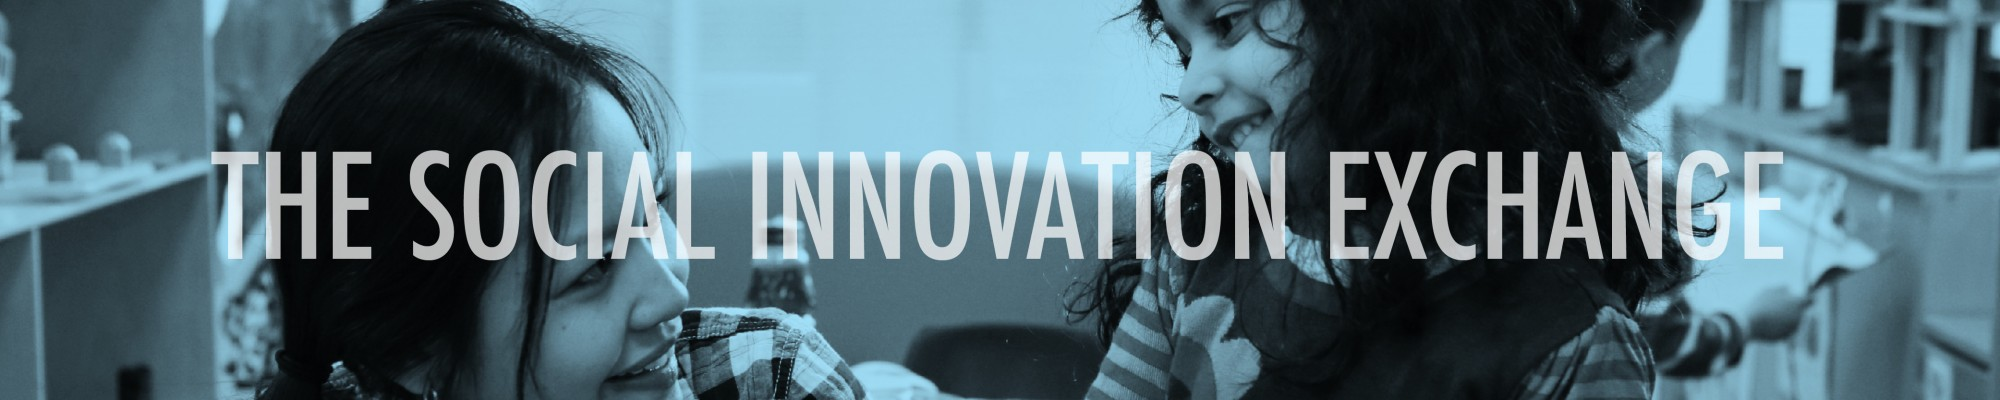 The Social Innovation Exchange